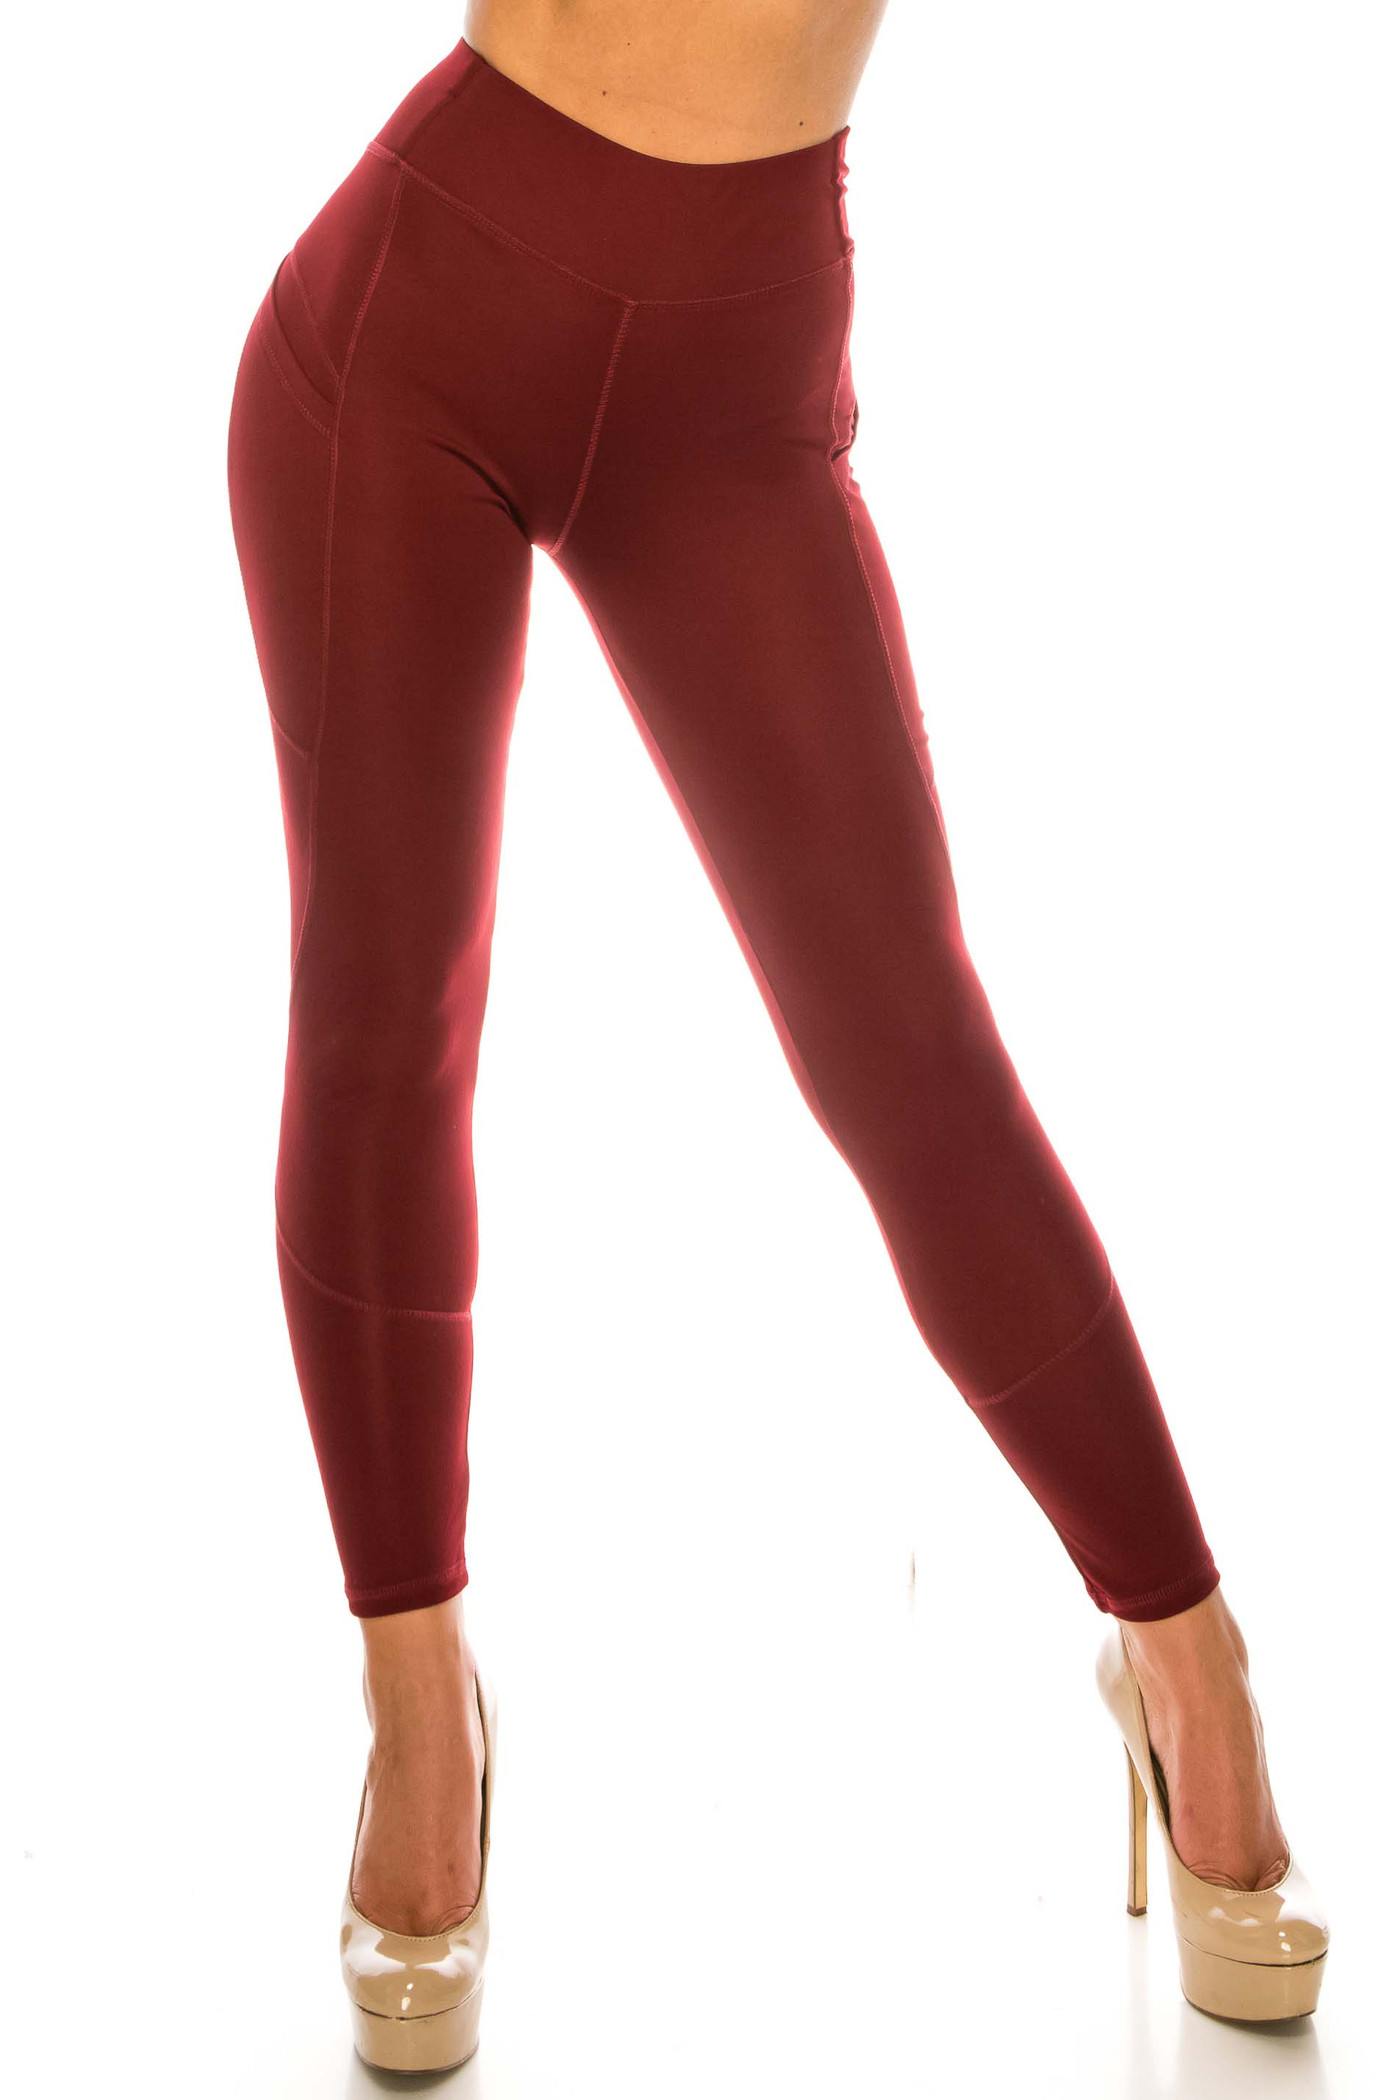 Burgundy Contour High Waisted Workout Leggings with Pockets